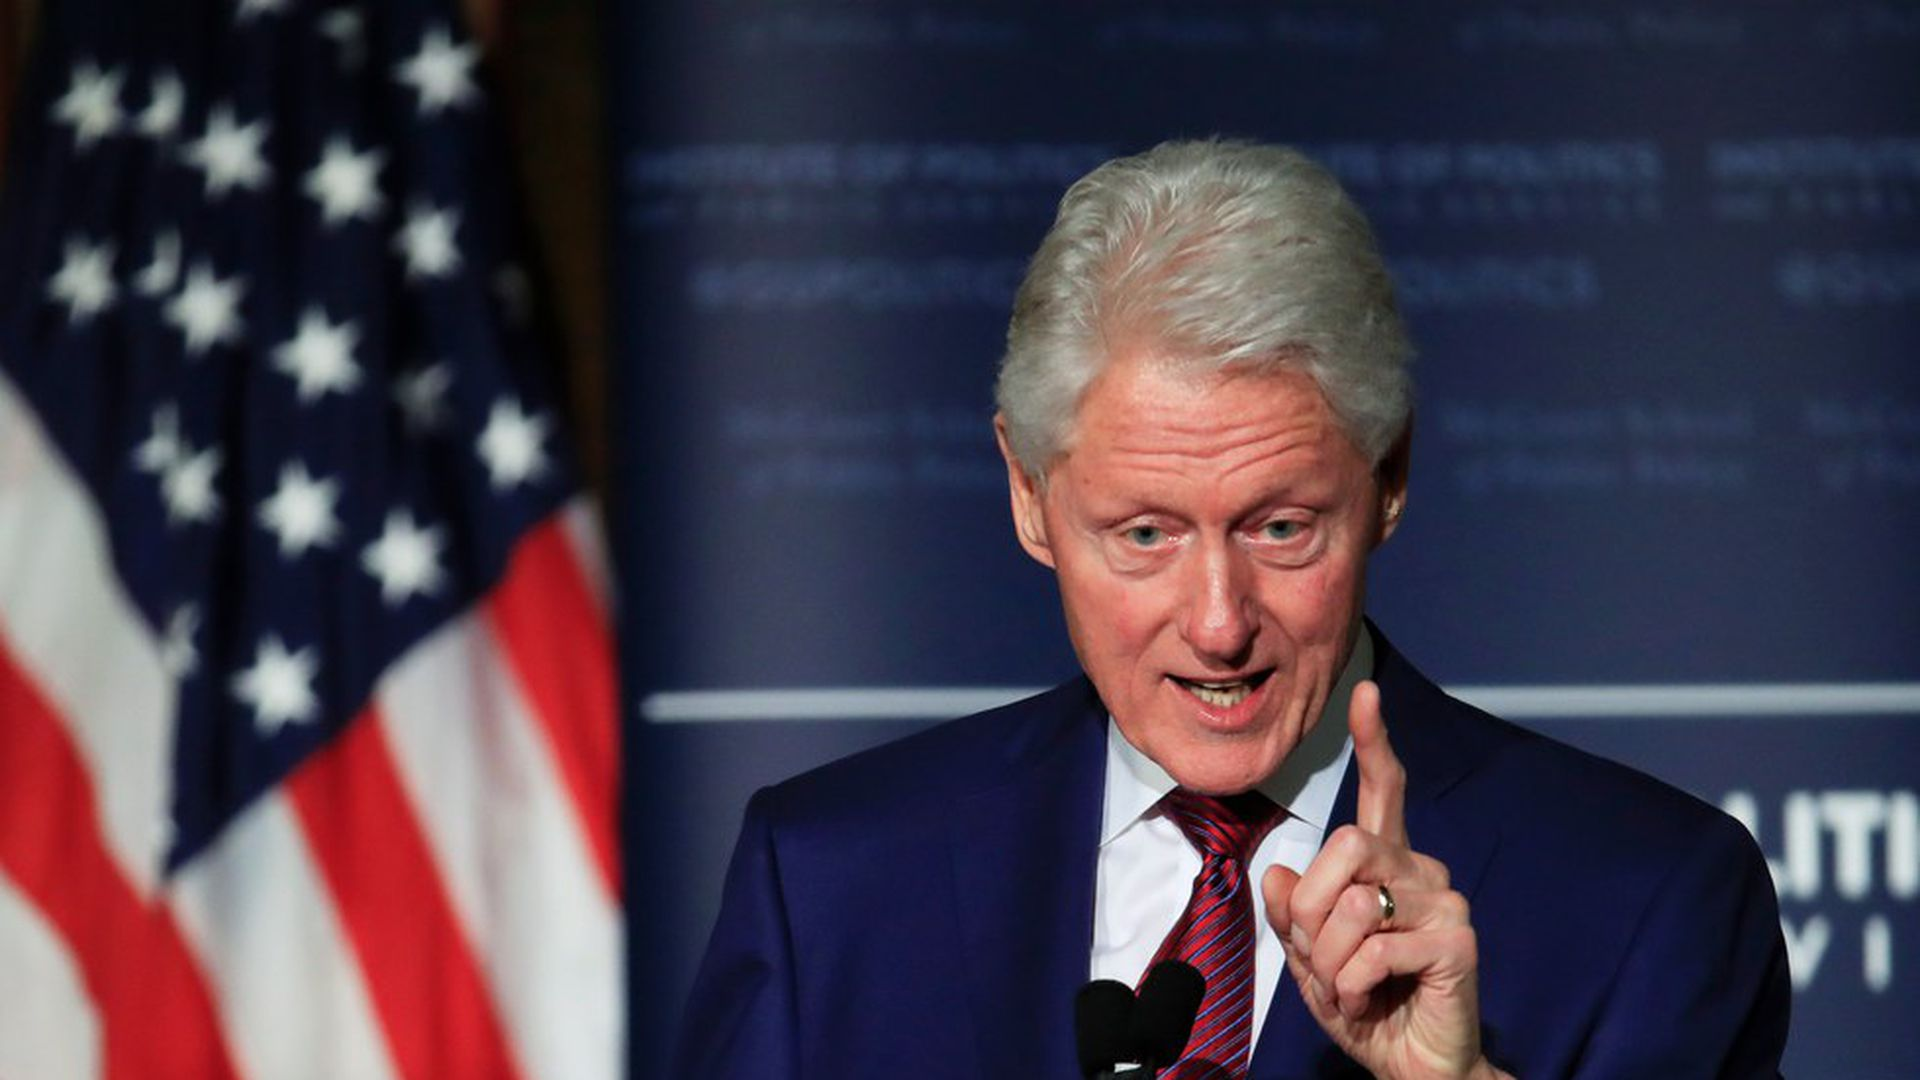 Project management by Bill Clinton